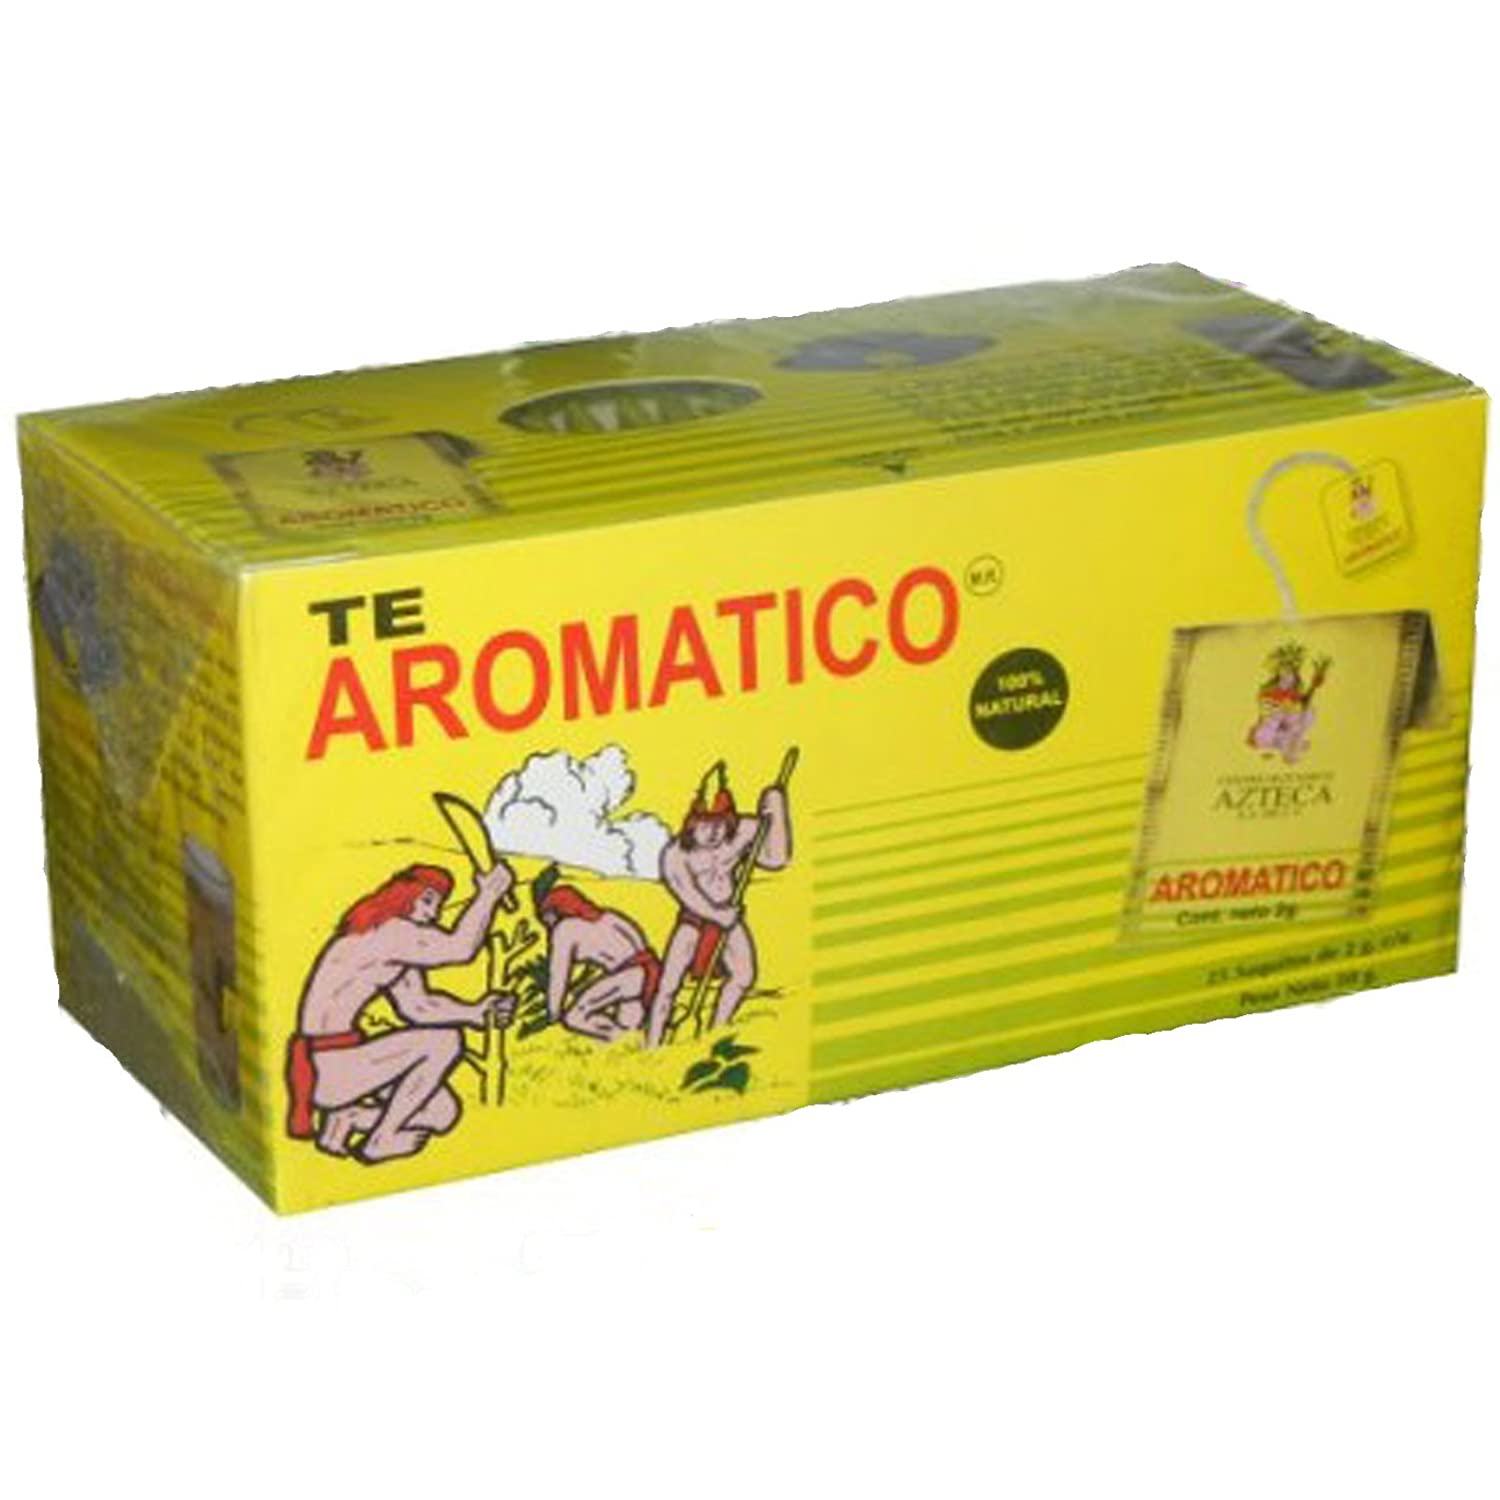 Amazon.com: Te Aromatico / Aromatic Tea Useful for Diarrhea ...